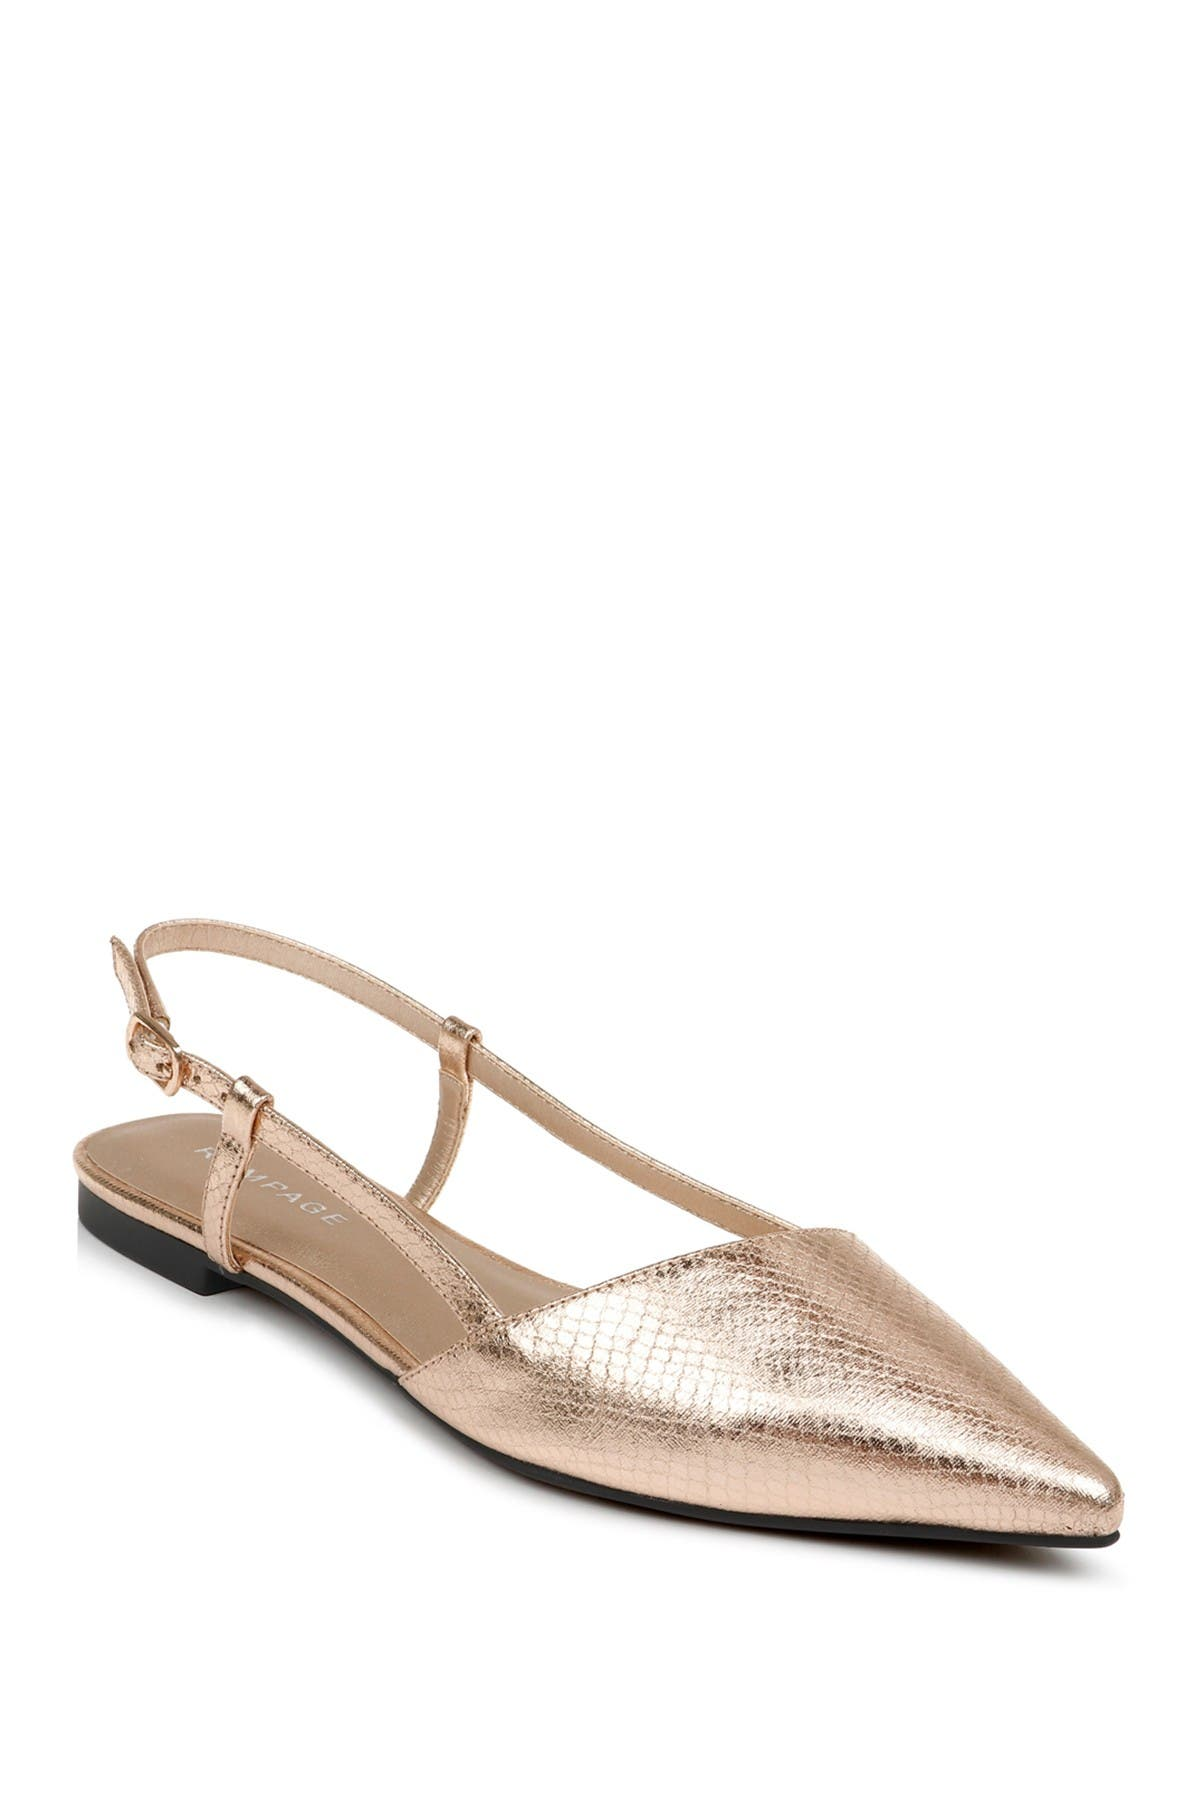 Image of Rampage Cora Pointed Toe Flat